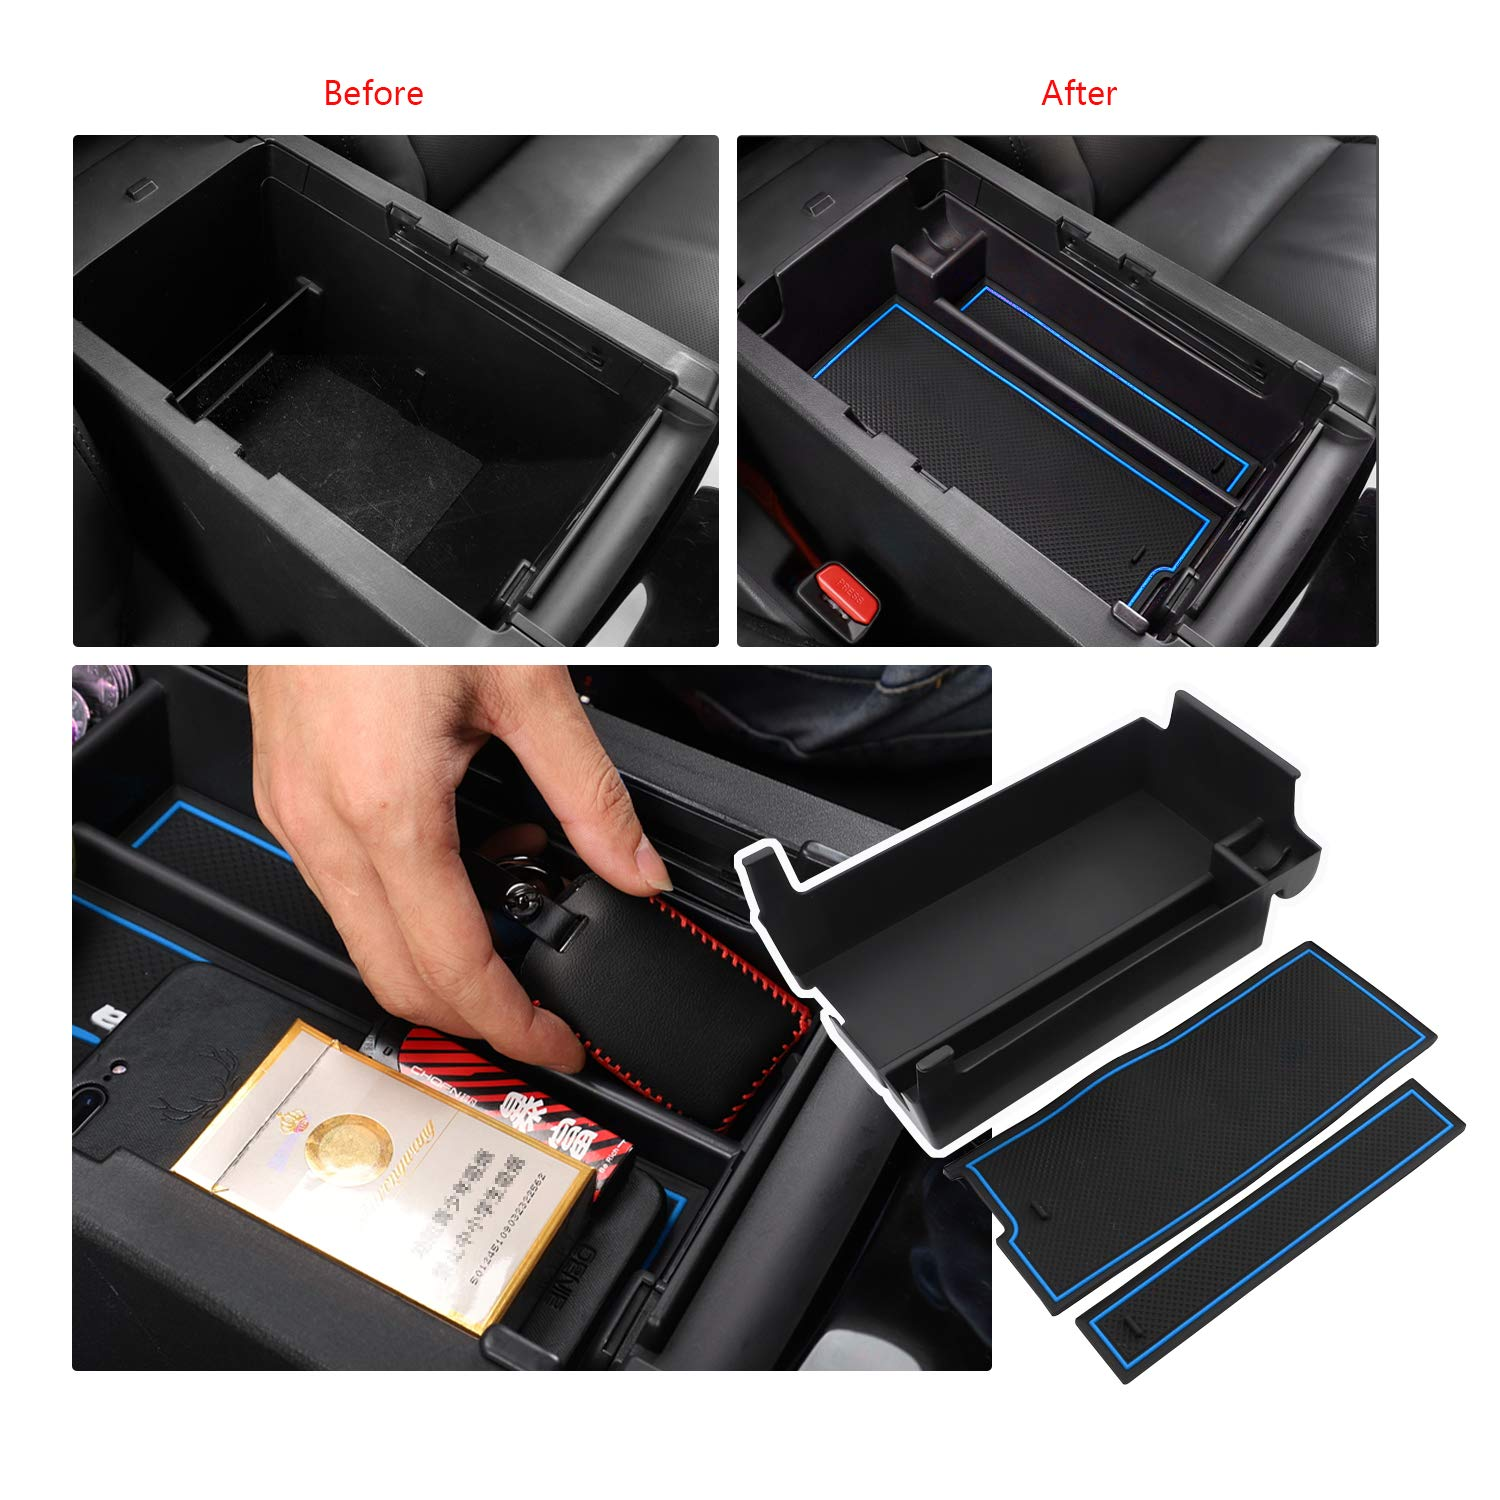 Red LFOTPP Mazda Mazda3 2019 Armrest Center Console Organizer Tray Accessories with Coin and Sunglasses Holder,Secondary Storage Box